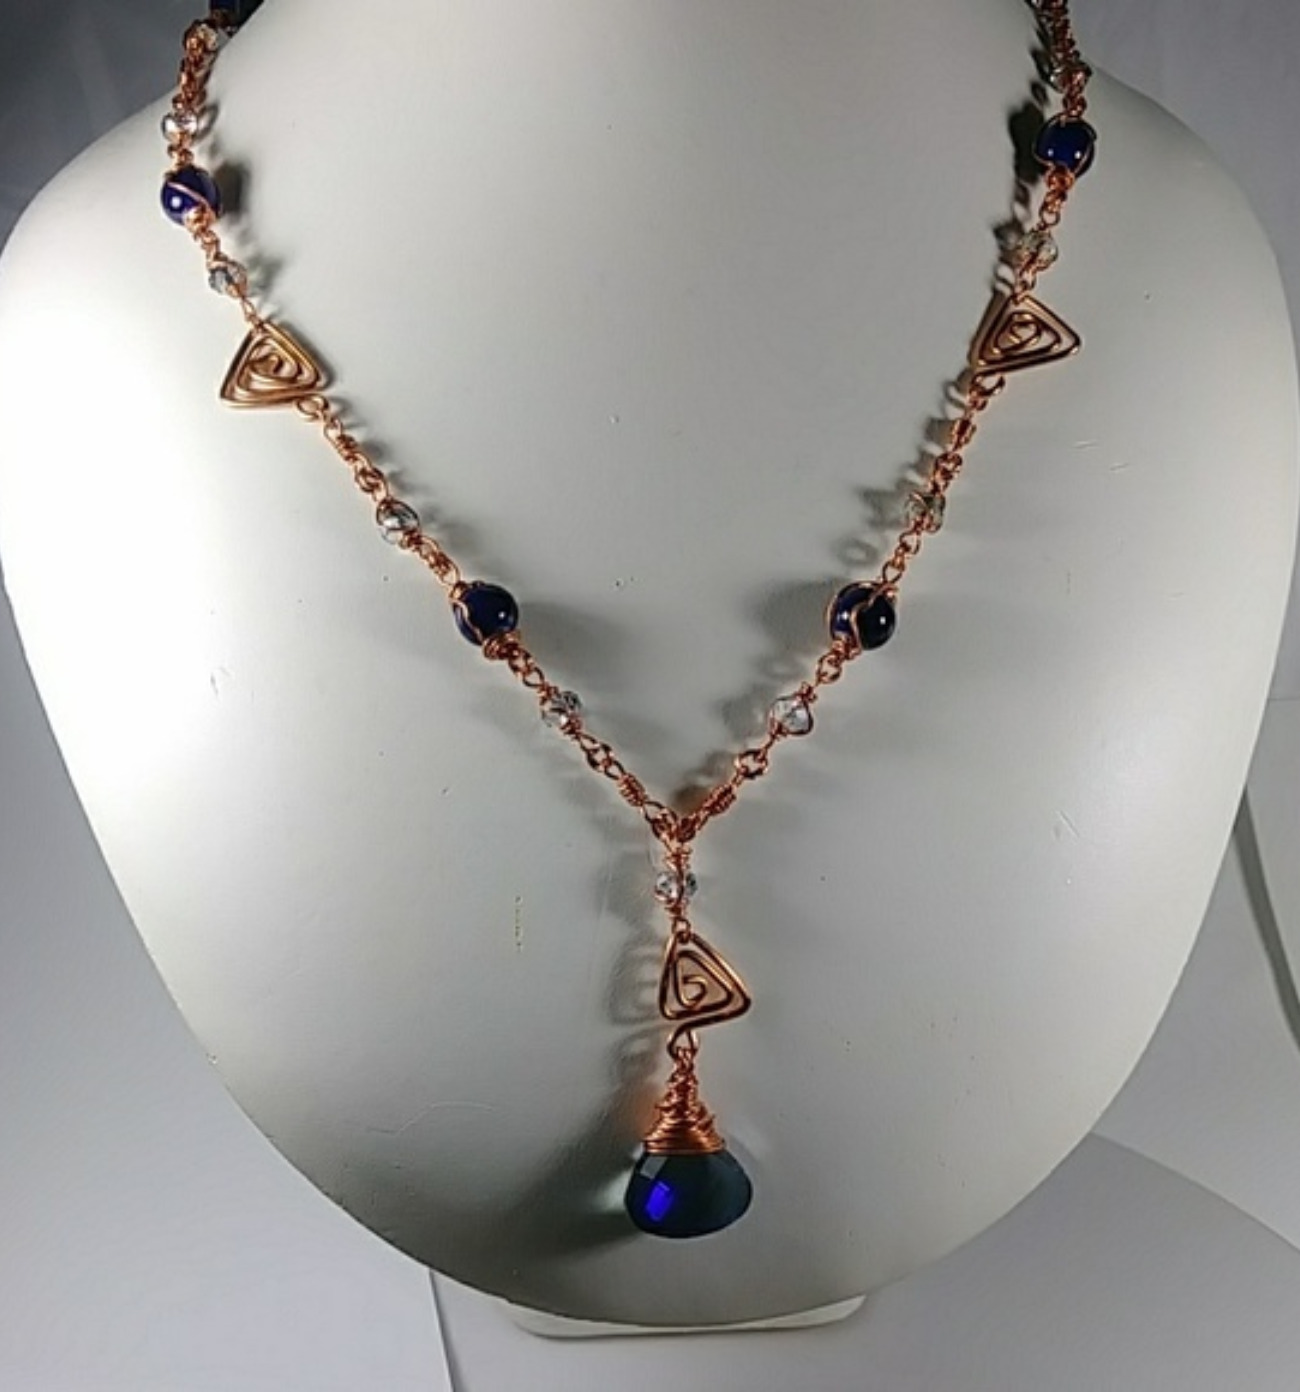 (303 -NCK) - Description: Copper Wire and Lapis Glass Beads Faceted Glass Beads). Hook Closure - Dimension: 29 Inches (L)